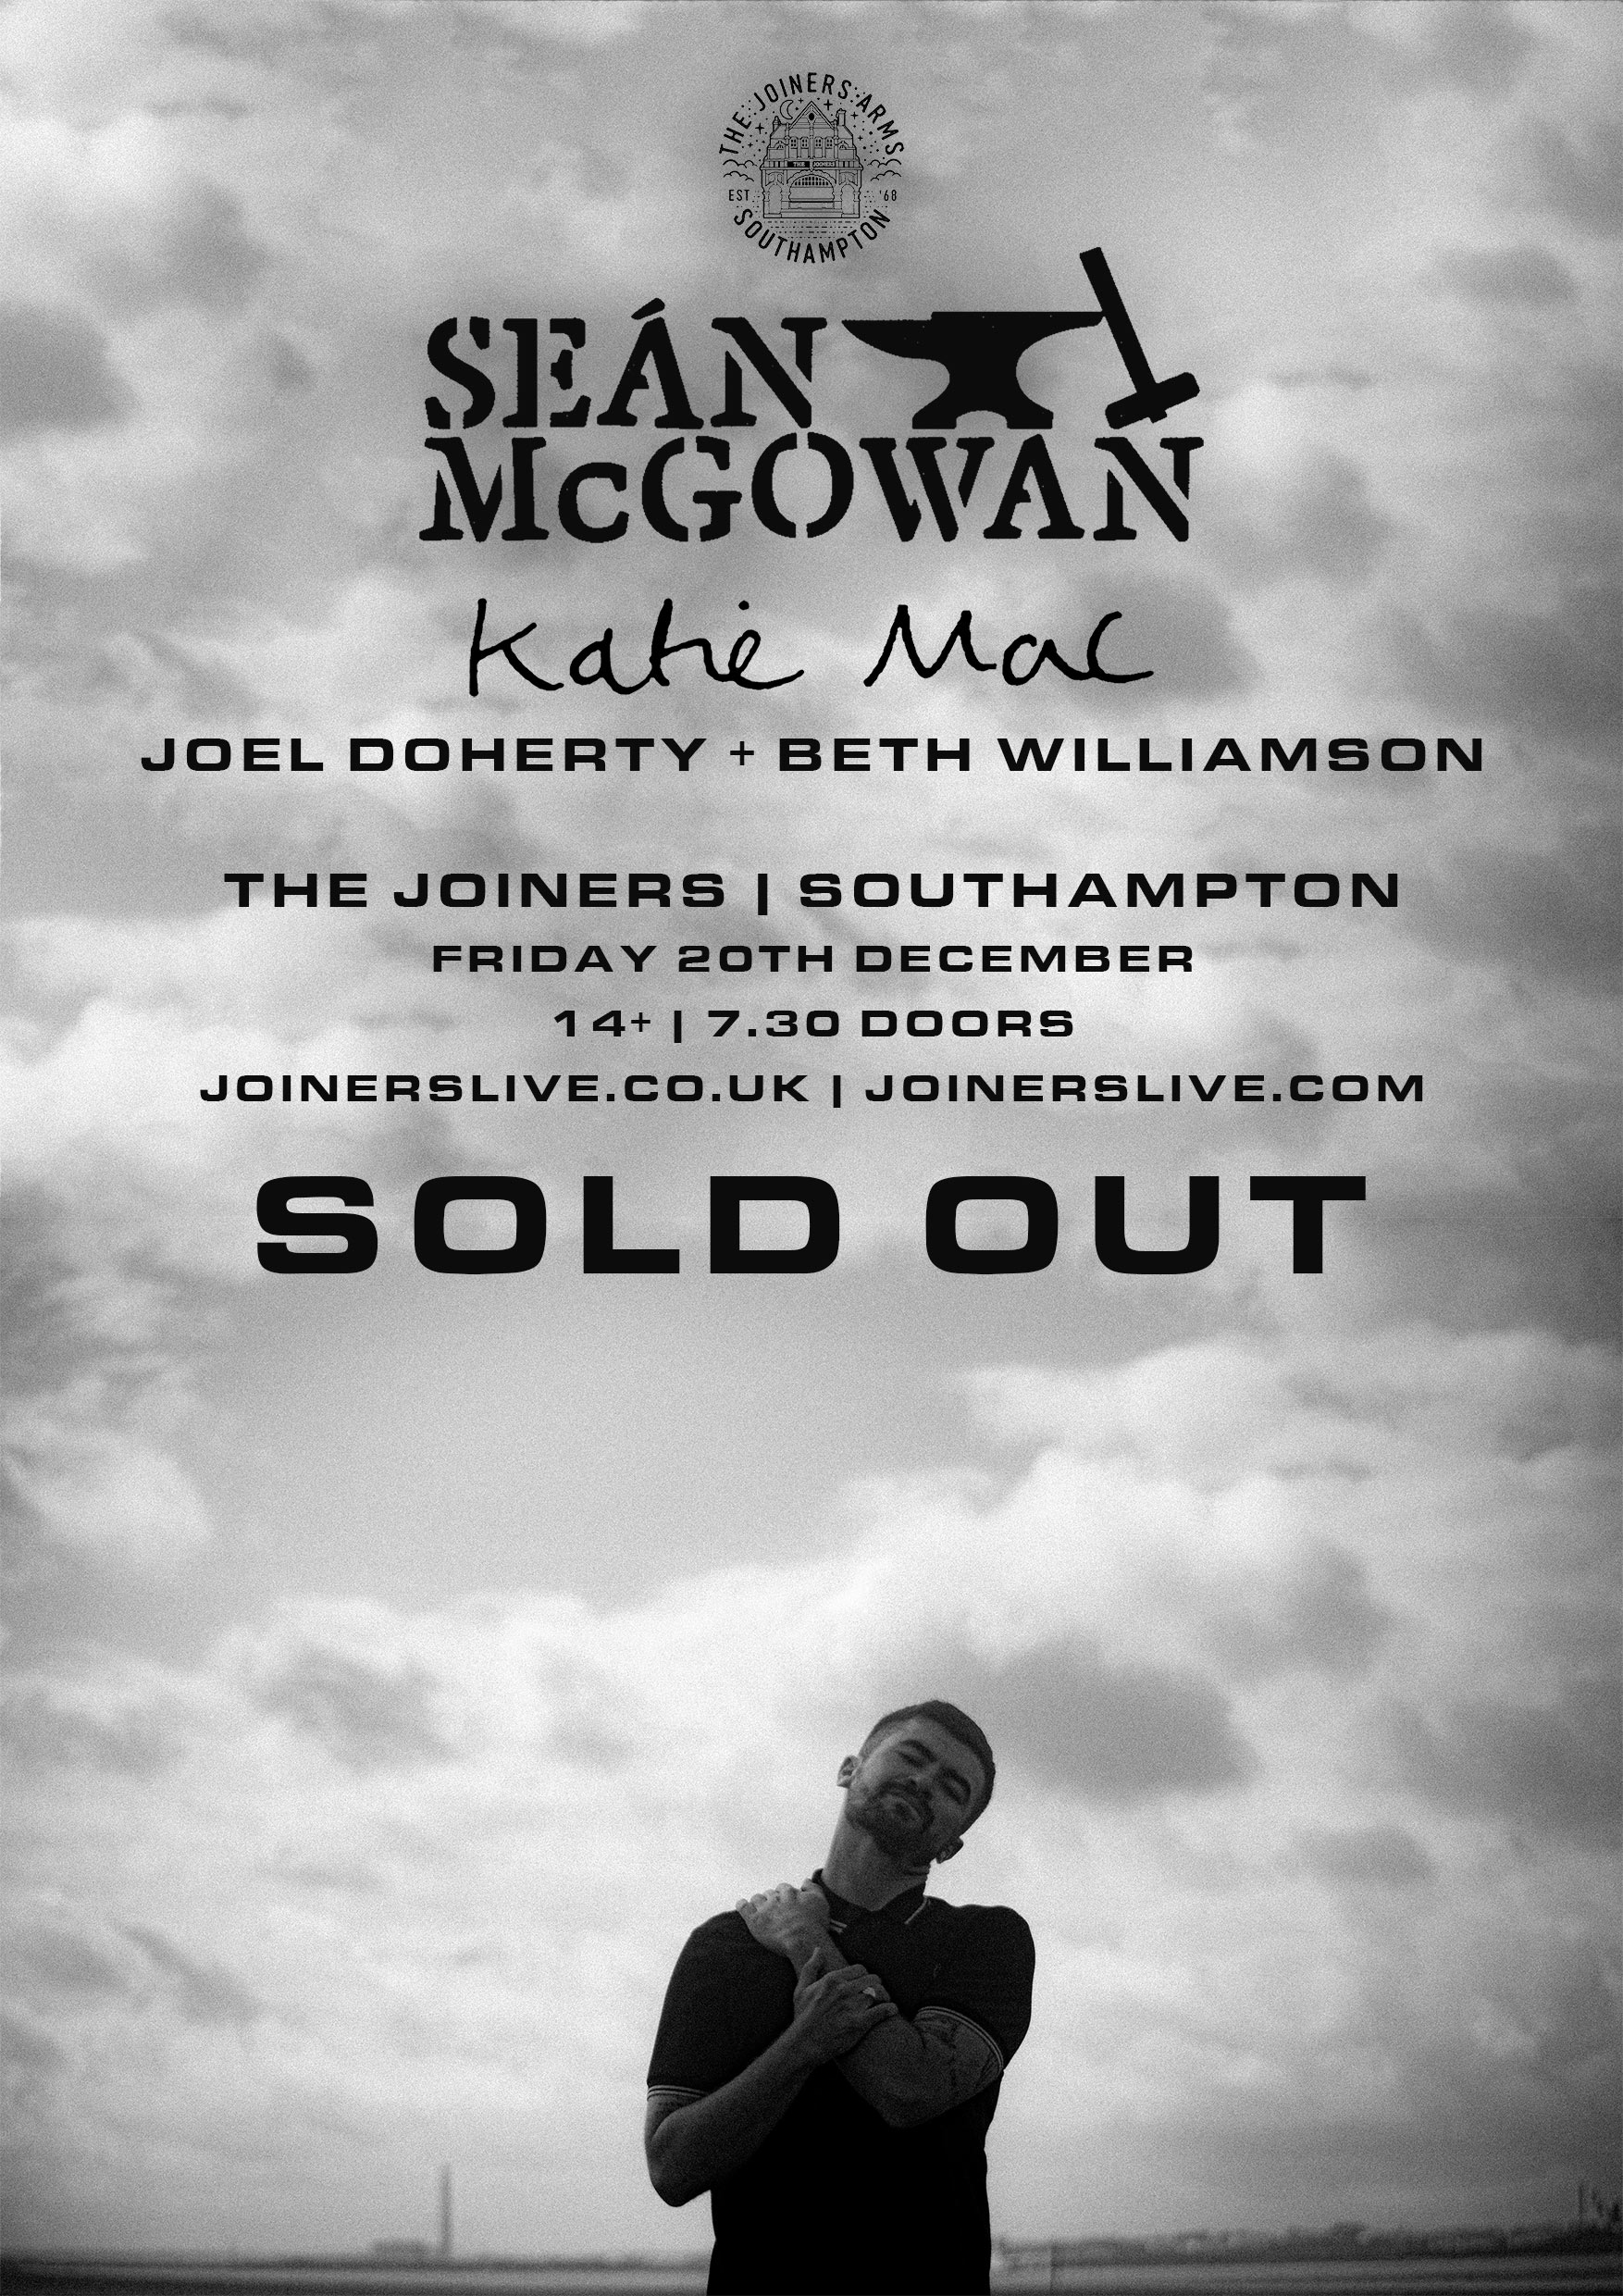 SEAN MCGOWAN * SOLD OUT *